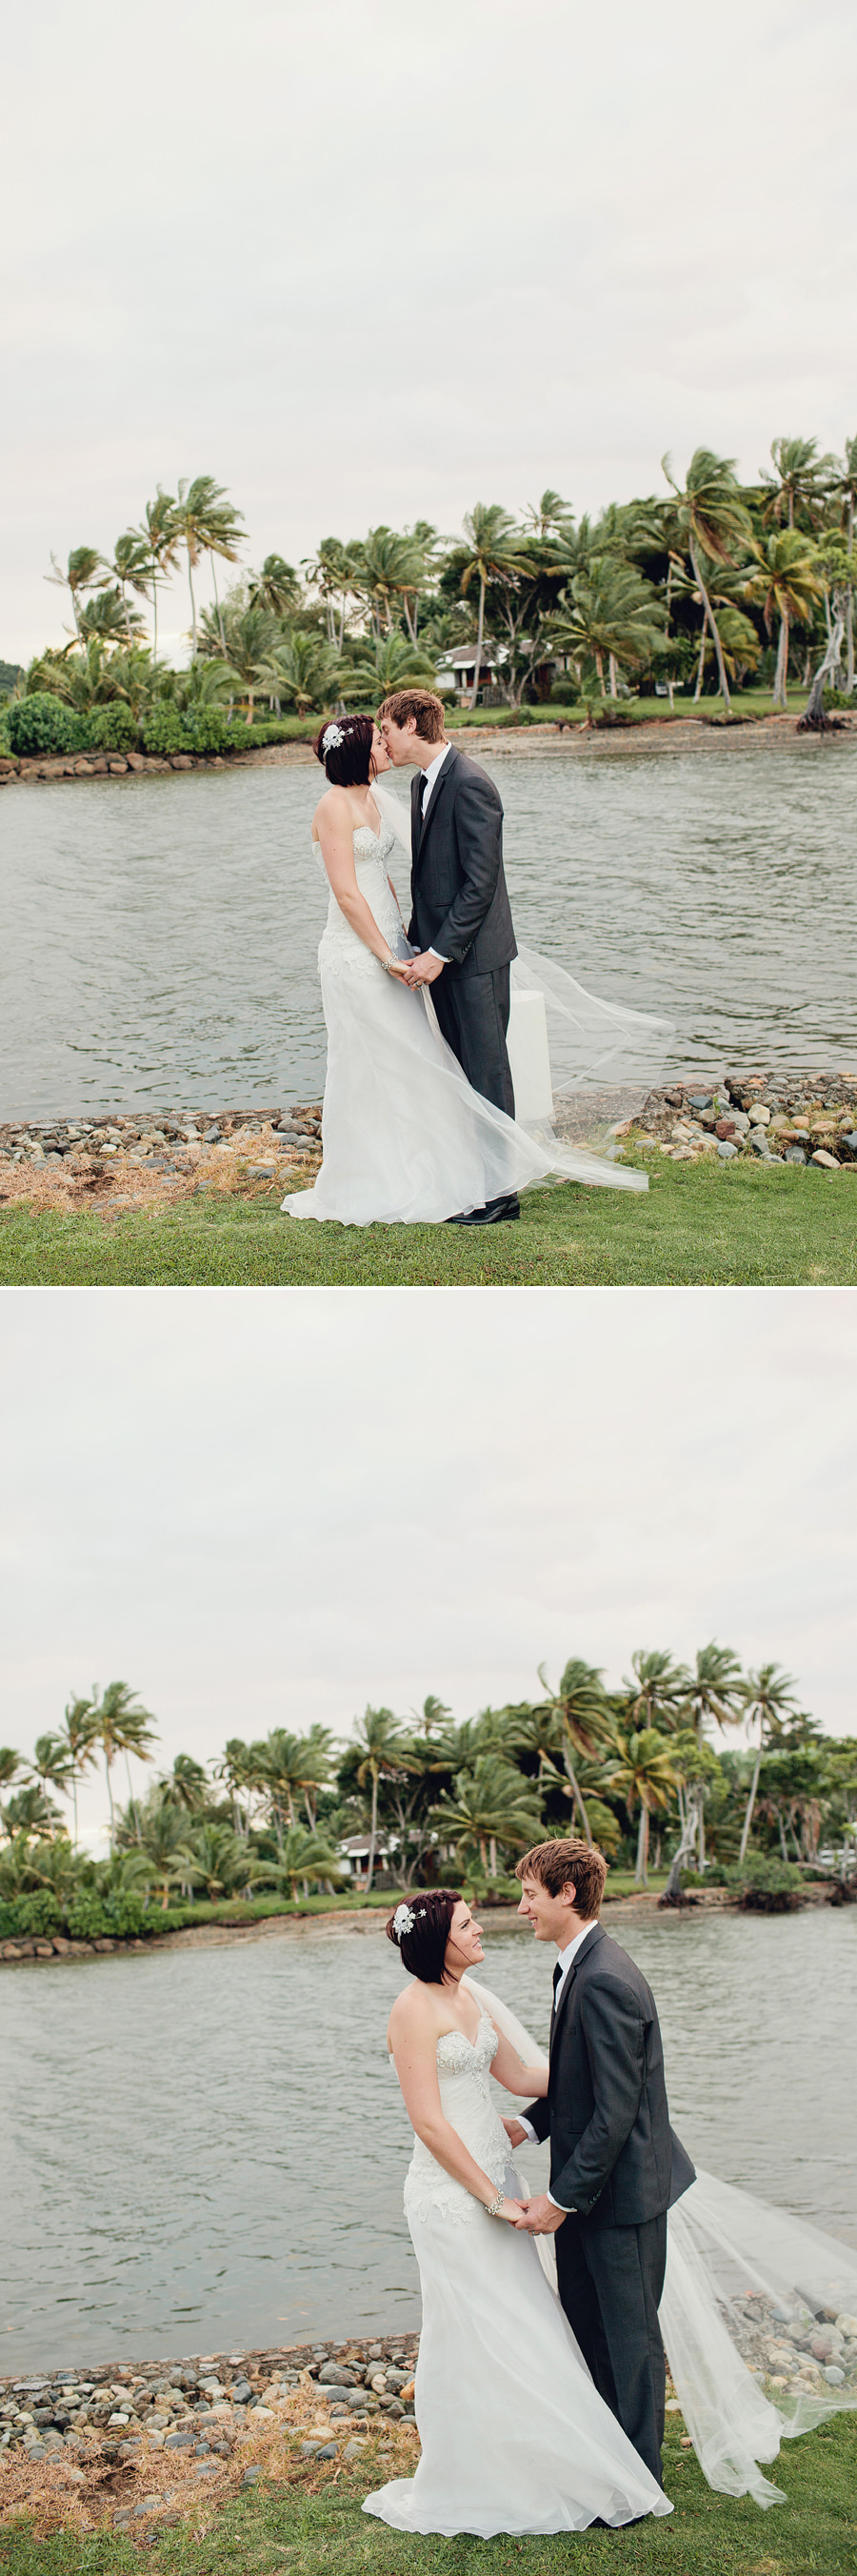 Viti Levu Wedding Photographer: Romantic portraits